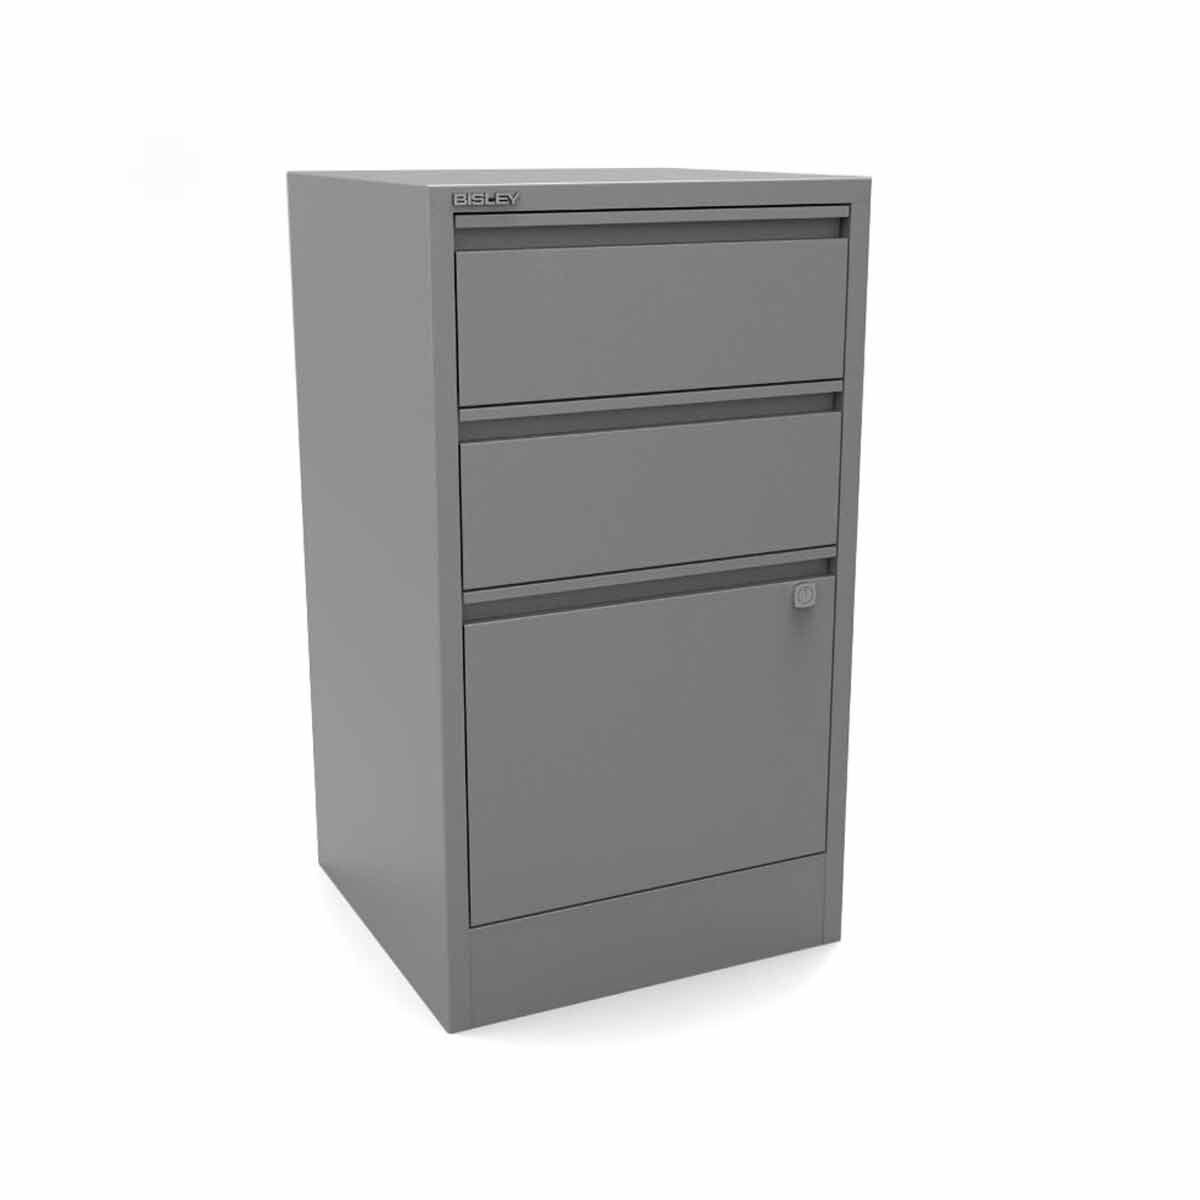 Bisley A4 3 Drawer Flush Front Stationery and Filing Cabinet Silver